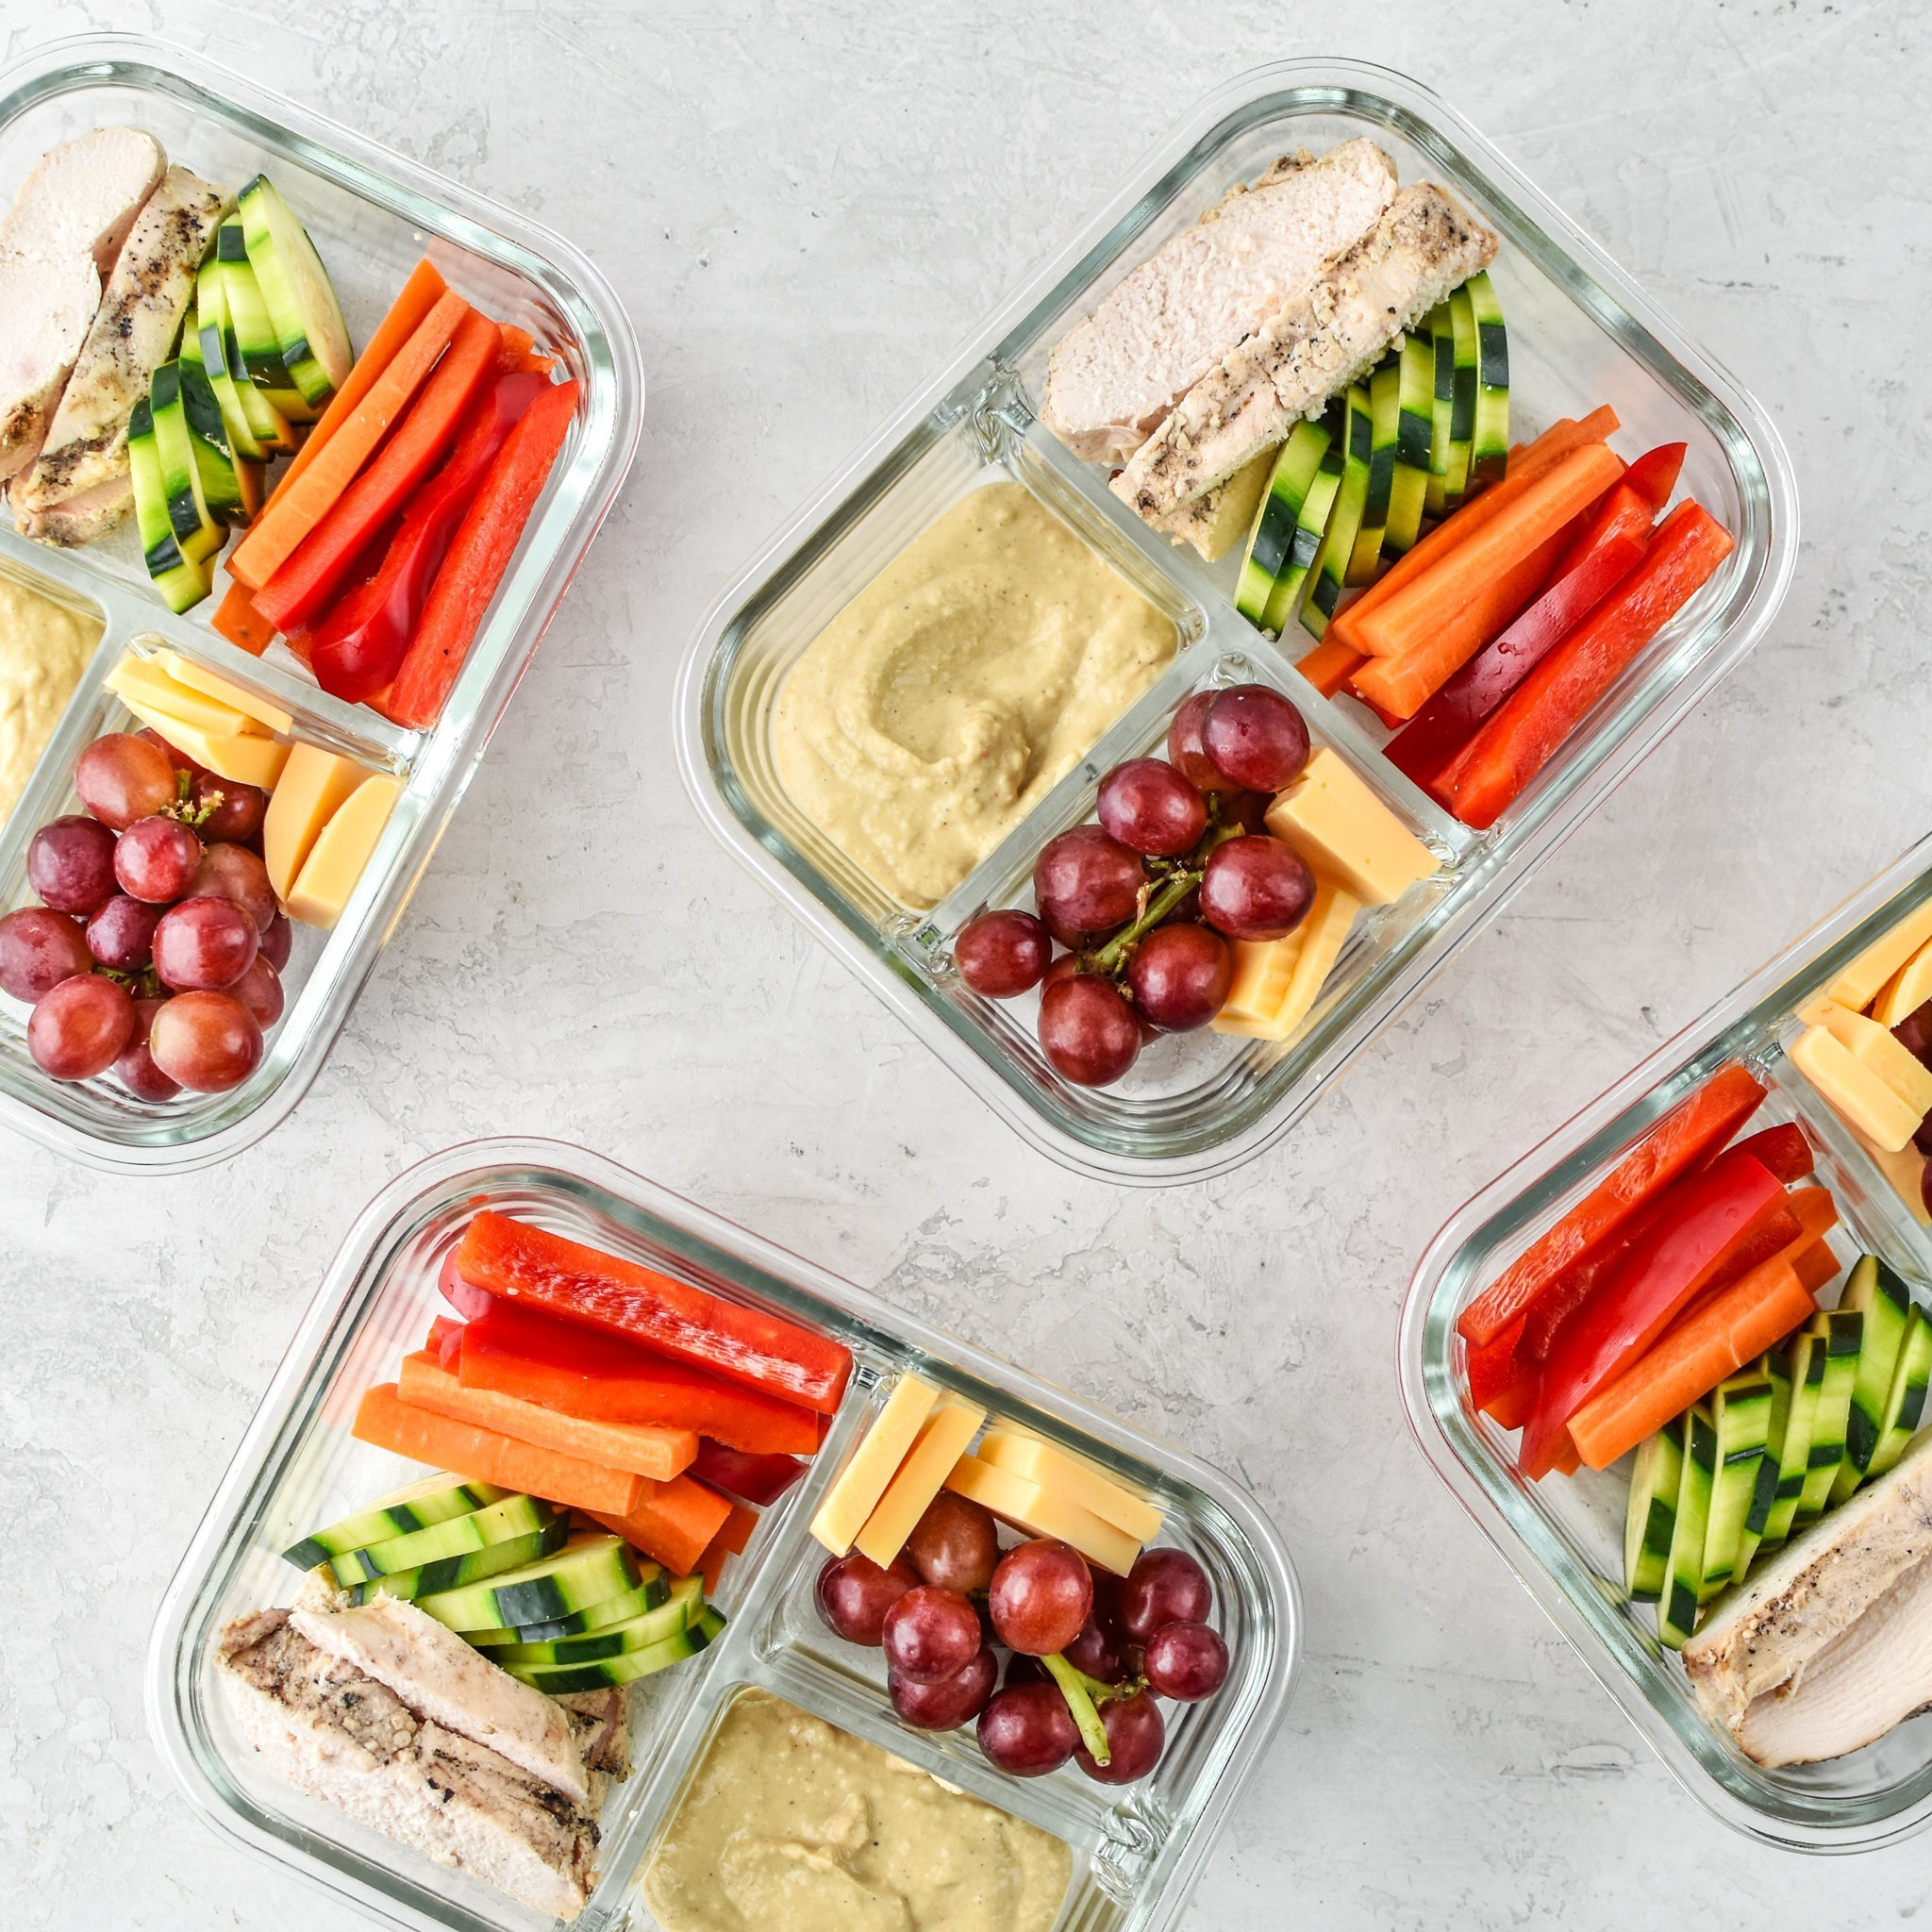 Chicken & hummus place meal prep in 3 compartment containers.